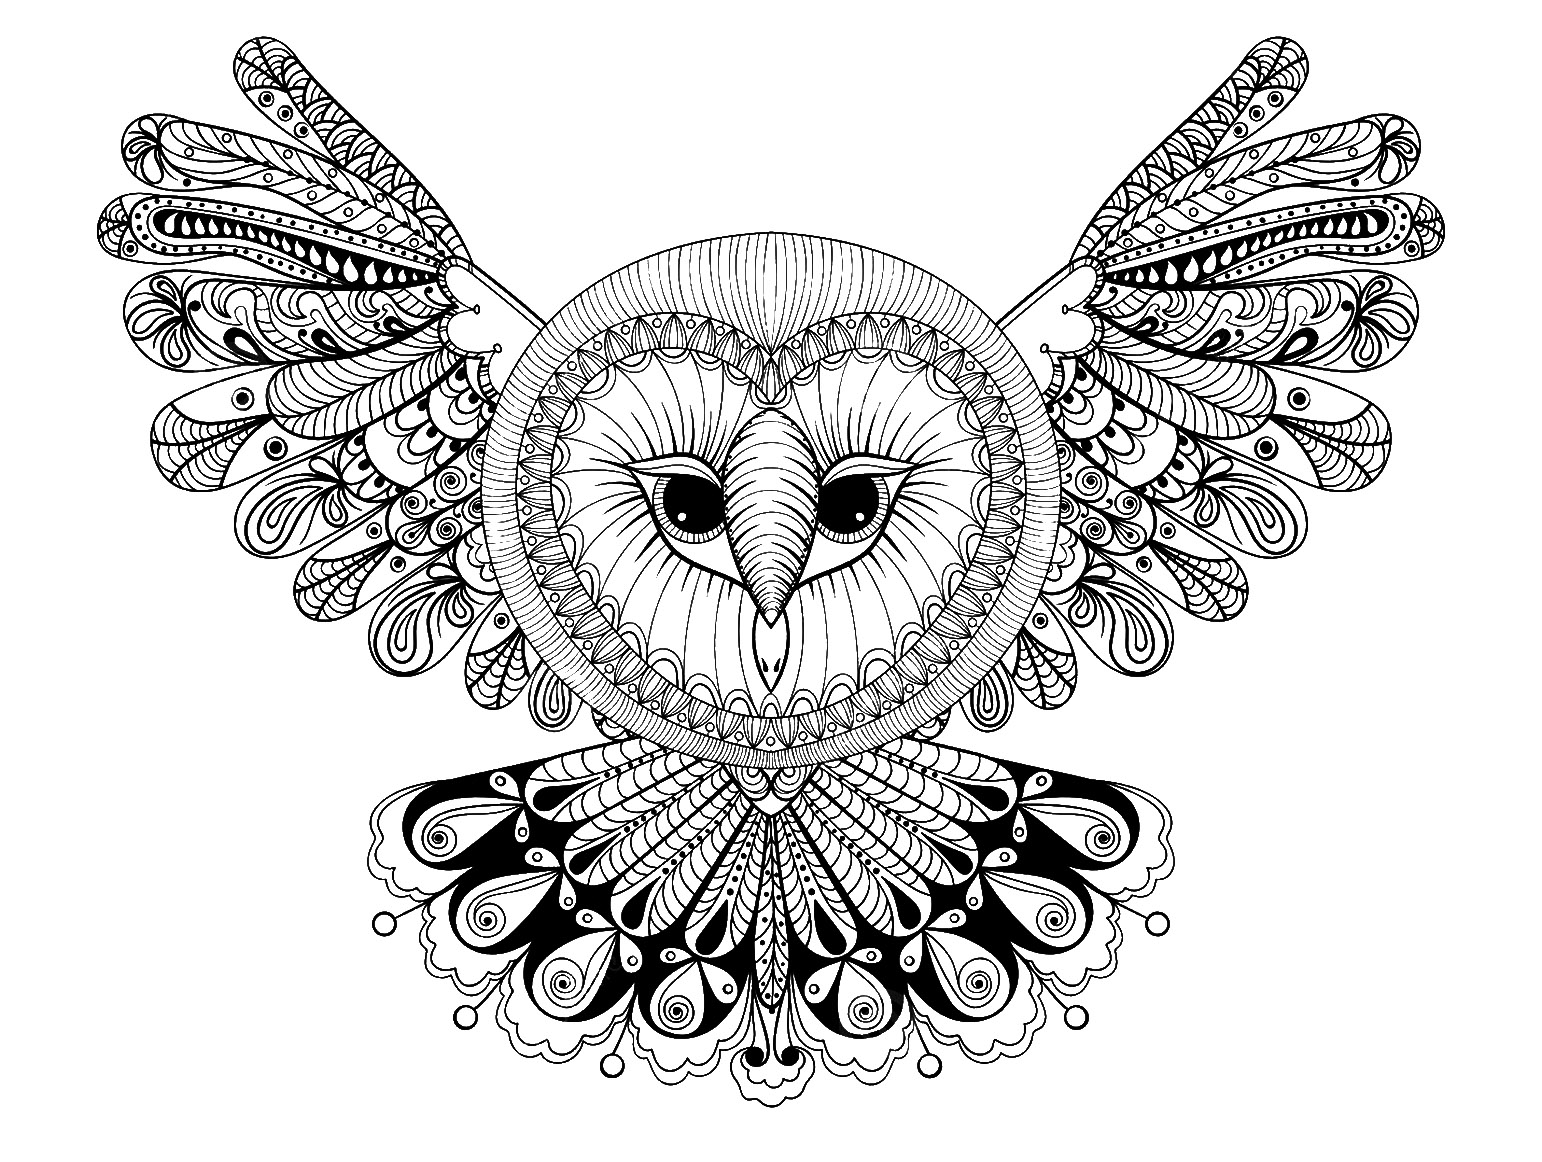 owl mandala mandala to download owl simple mandalas 100 mandalas mandala owl